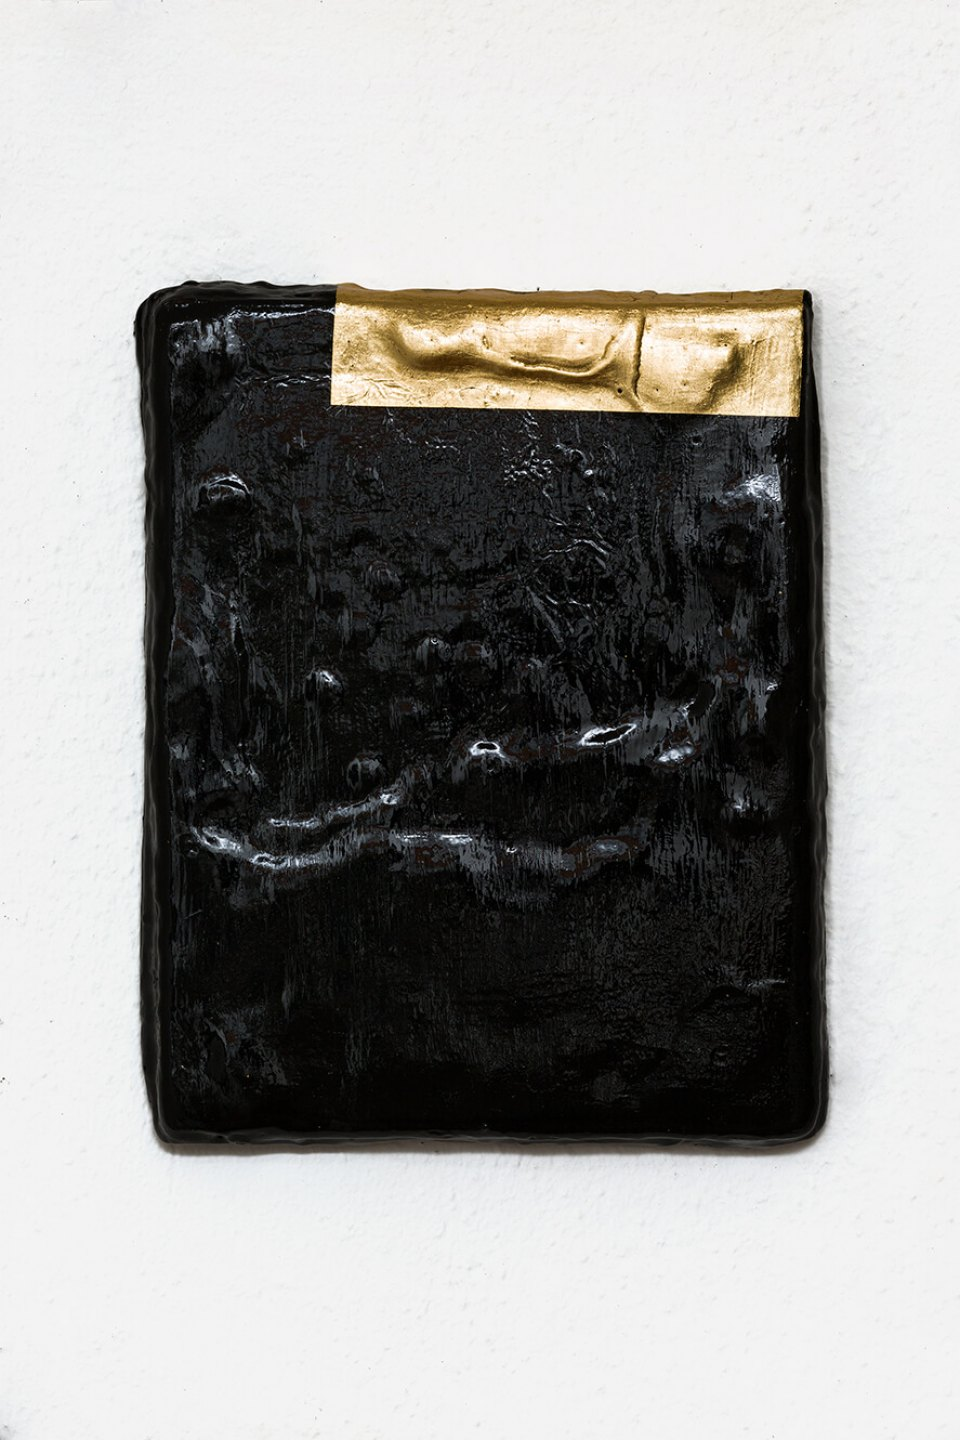 Paloma Bosquê,<em> Repetitions (the 12 defects)</em>, 2013, encaustic and golden sheet on canvas, 24 × 19 cm - Mendes Wood DM